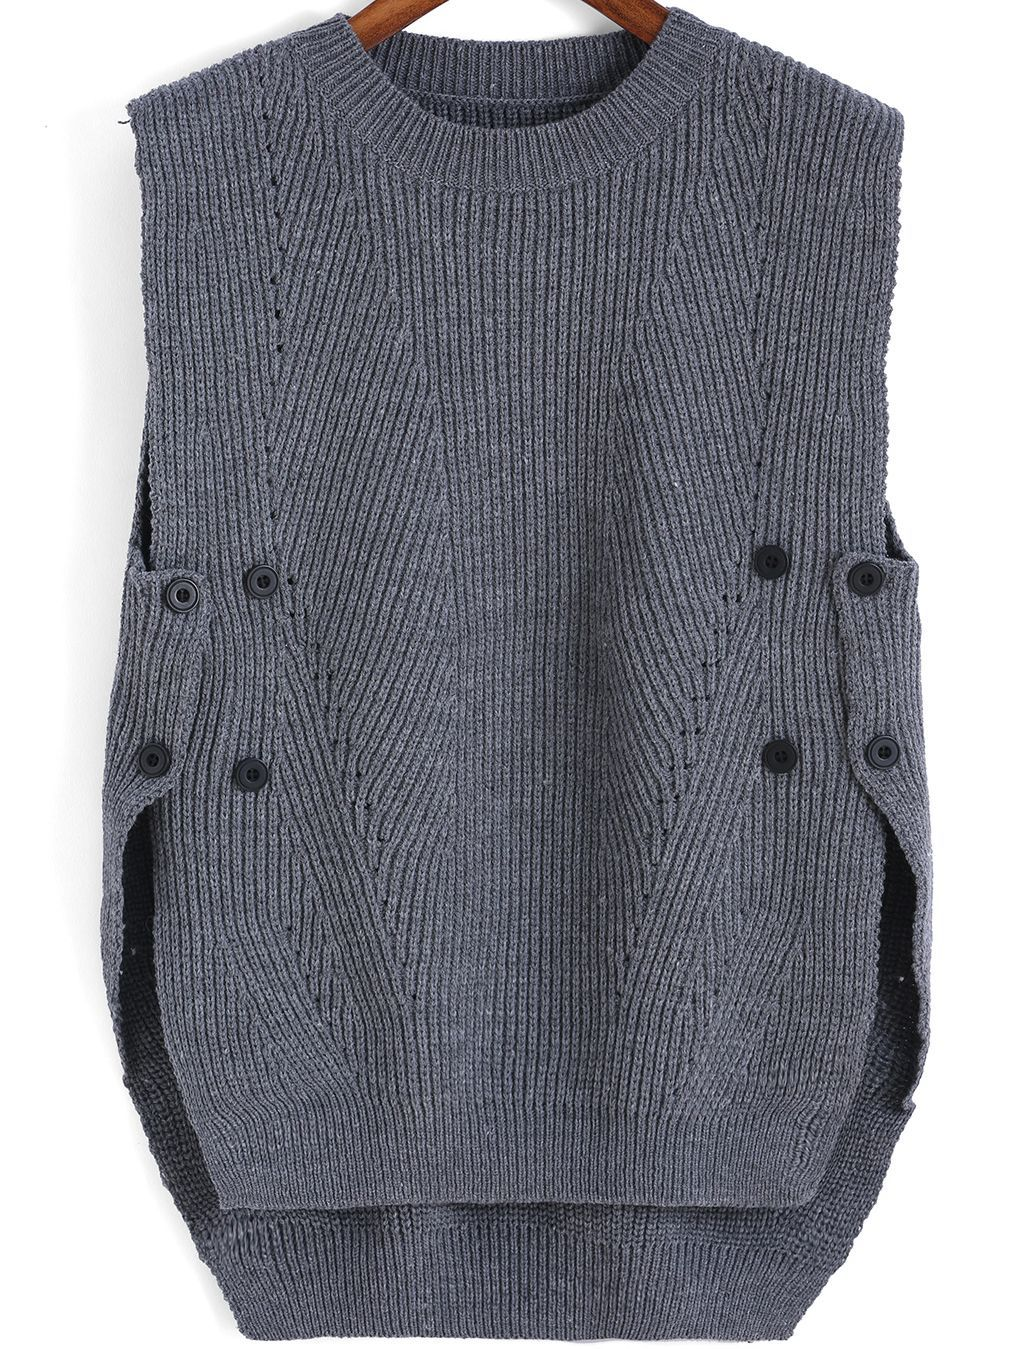 Shop grey round neck buttons knit sweater online shein offers shop grey round neck buttons knit sweater online shein offers grey round neck buttons knit bankloansurffo Choice Image